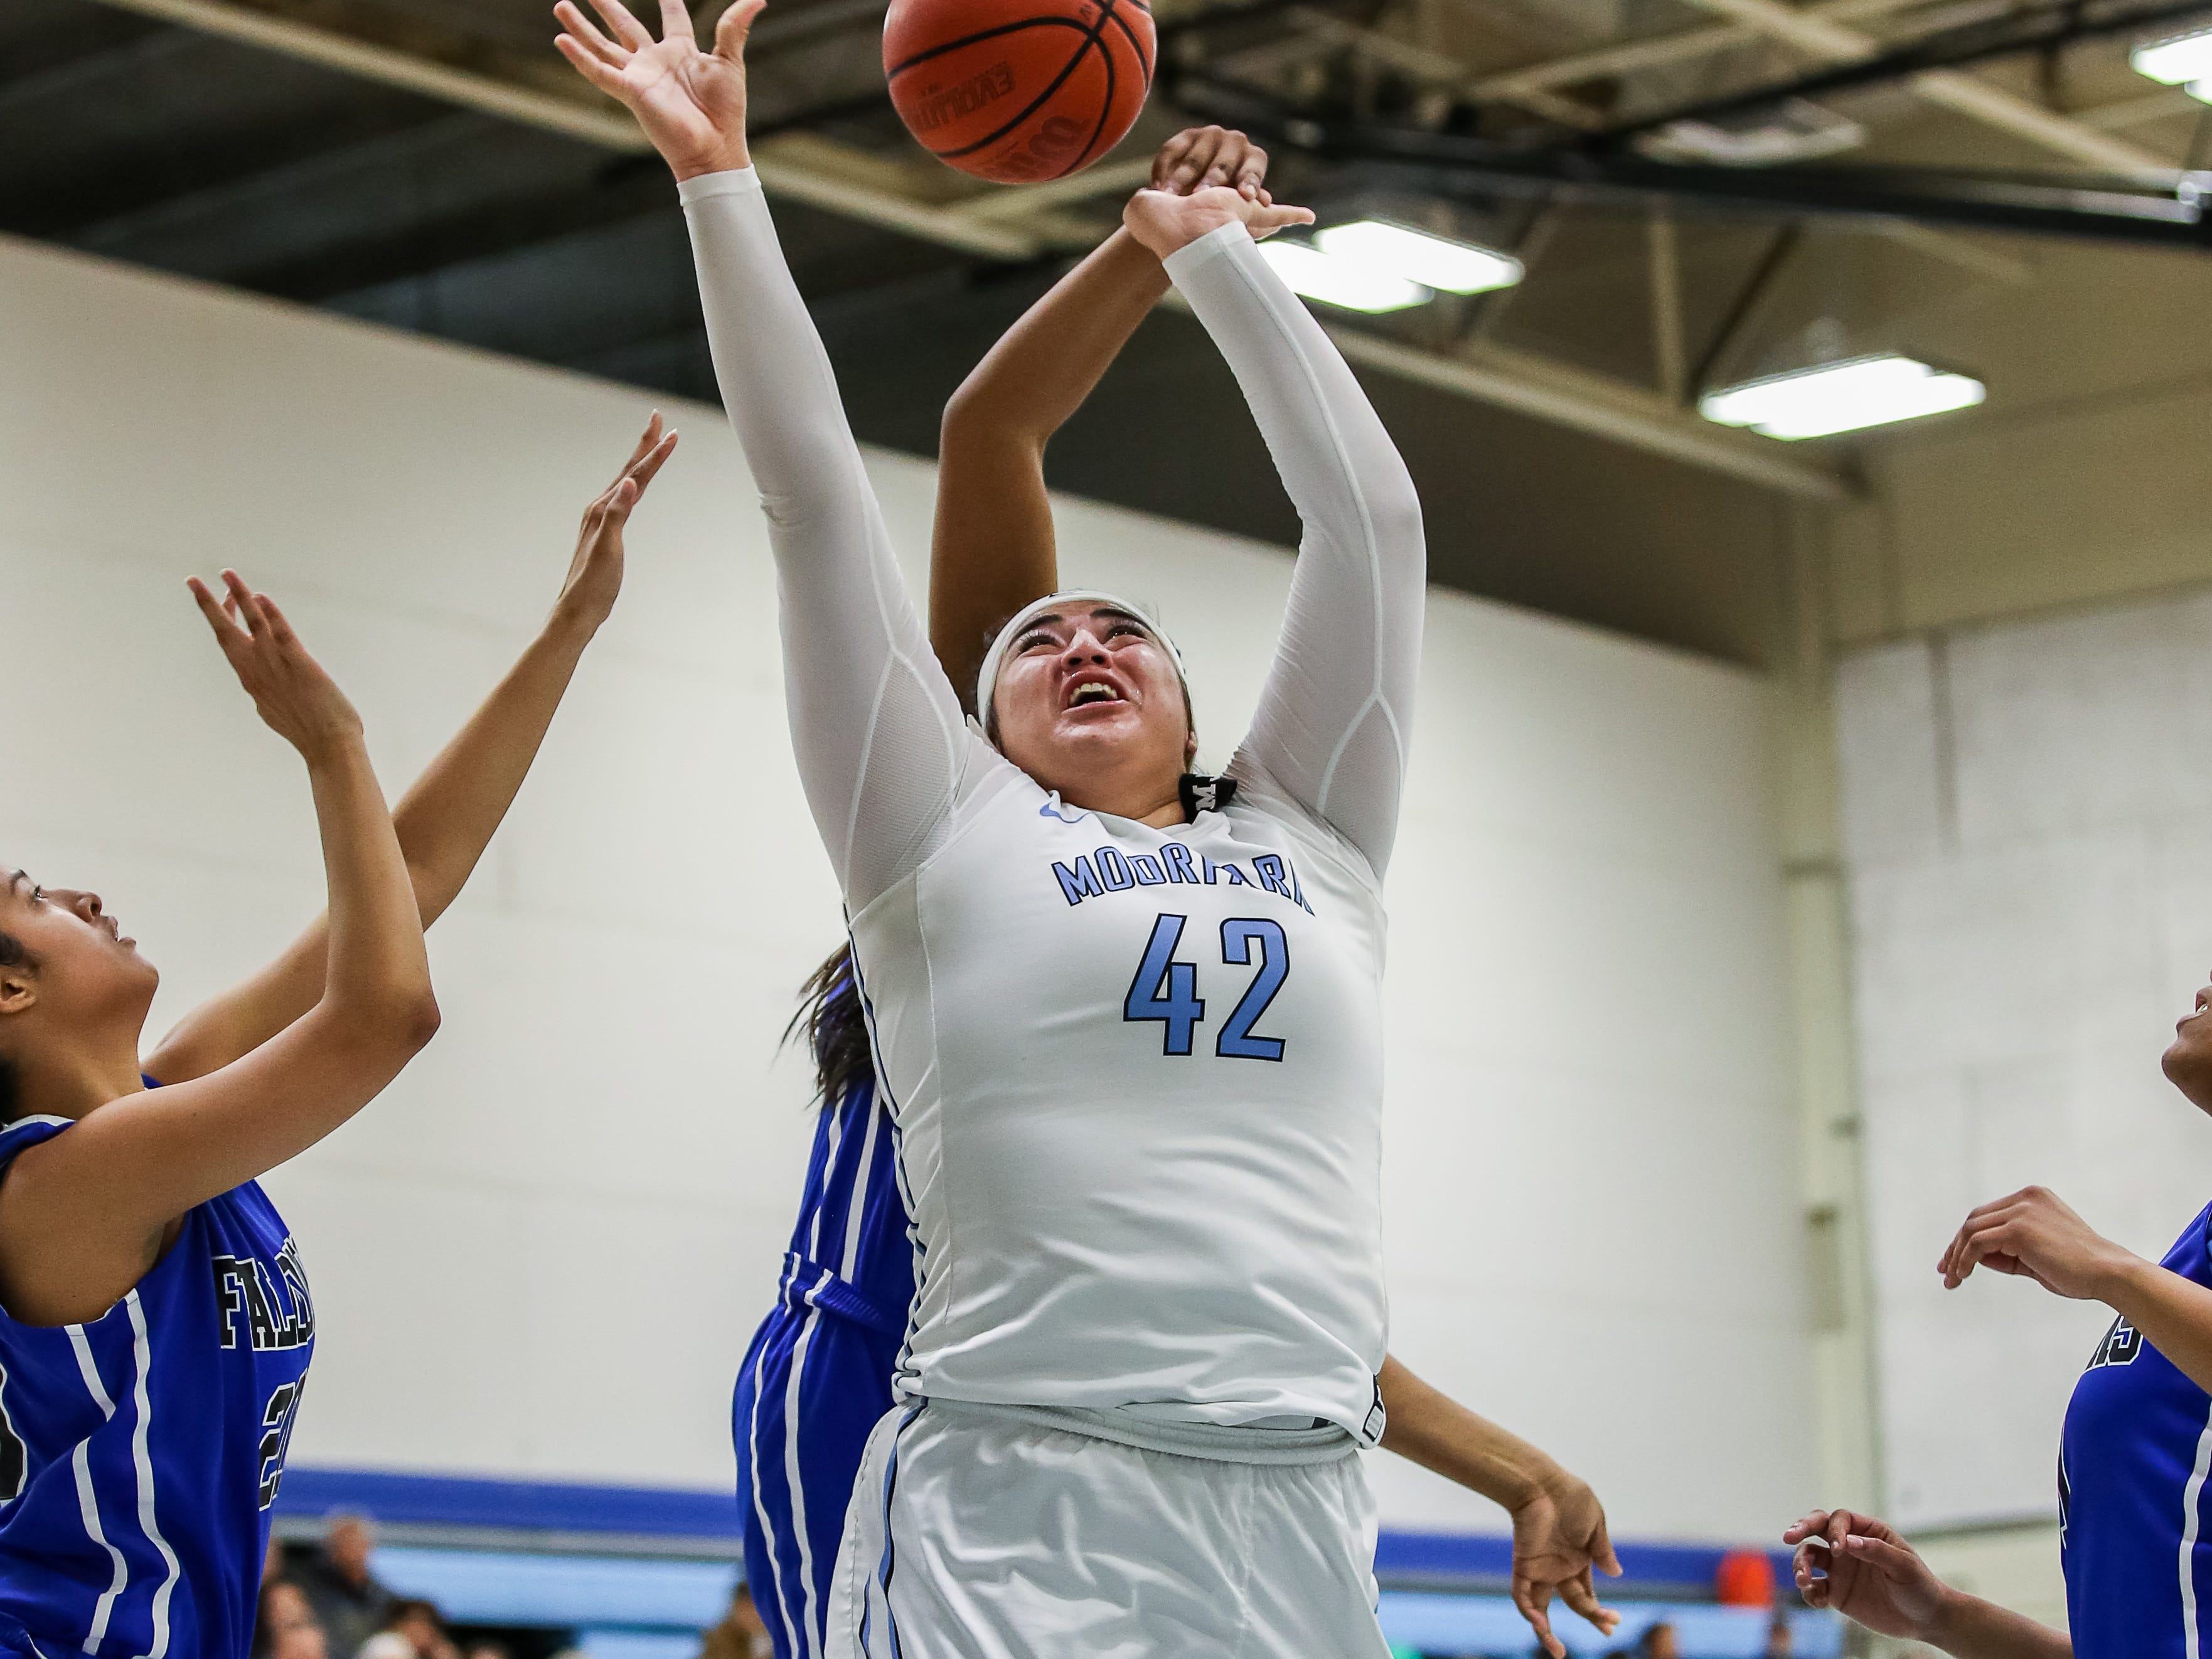 Moorpark College's Barbara Rangel is fouled while going up for a layup during the Raiders' 86-56 win over Cerritos in a Southern California regional semifinal game Saturday night at Moorpark College. Rangel had 19 points and 21 rebounds.